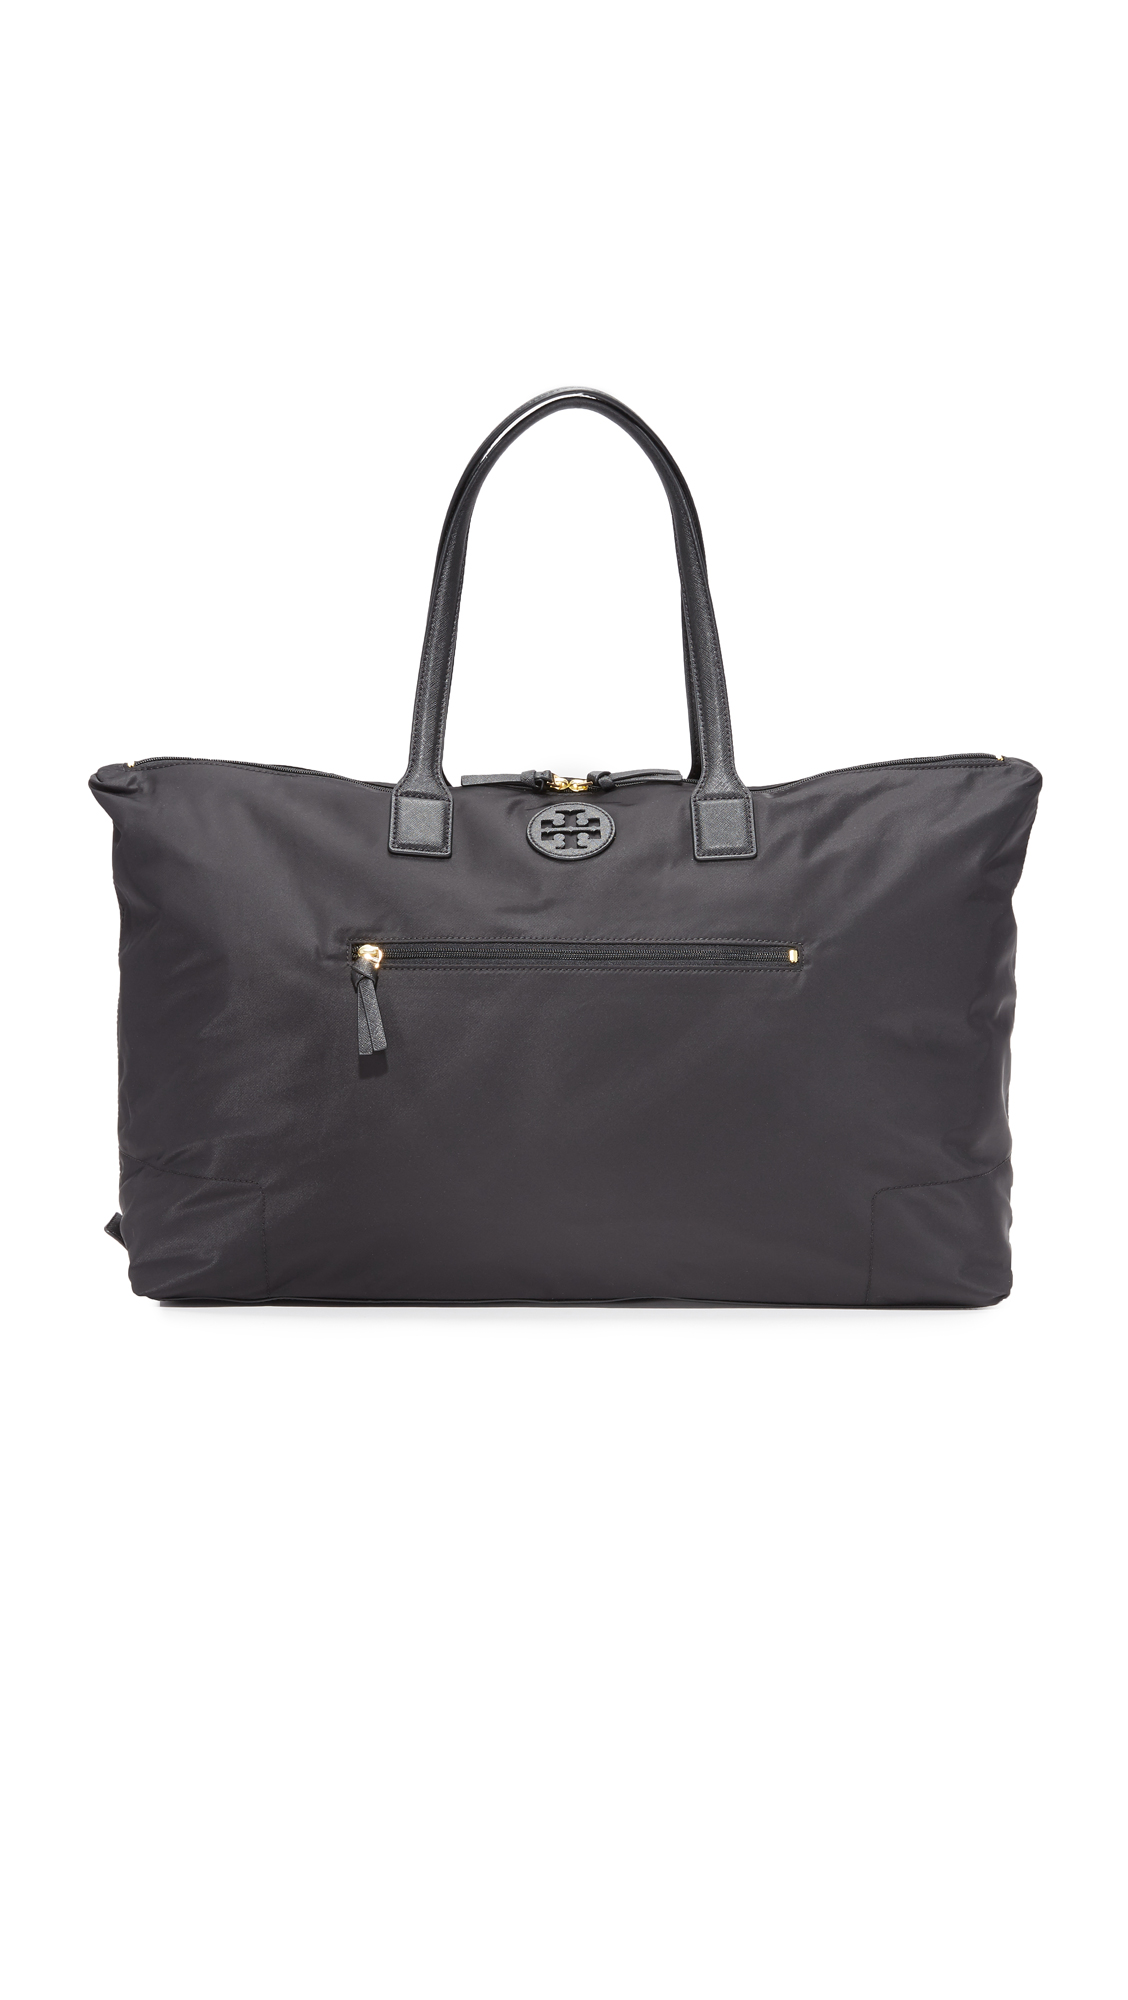 Tory Burch Ella Packable Overnight Satchel - Black at Shopbop